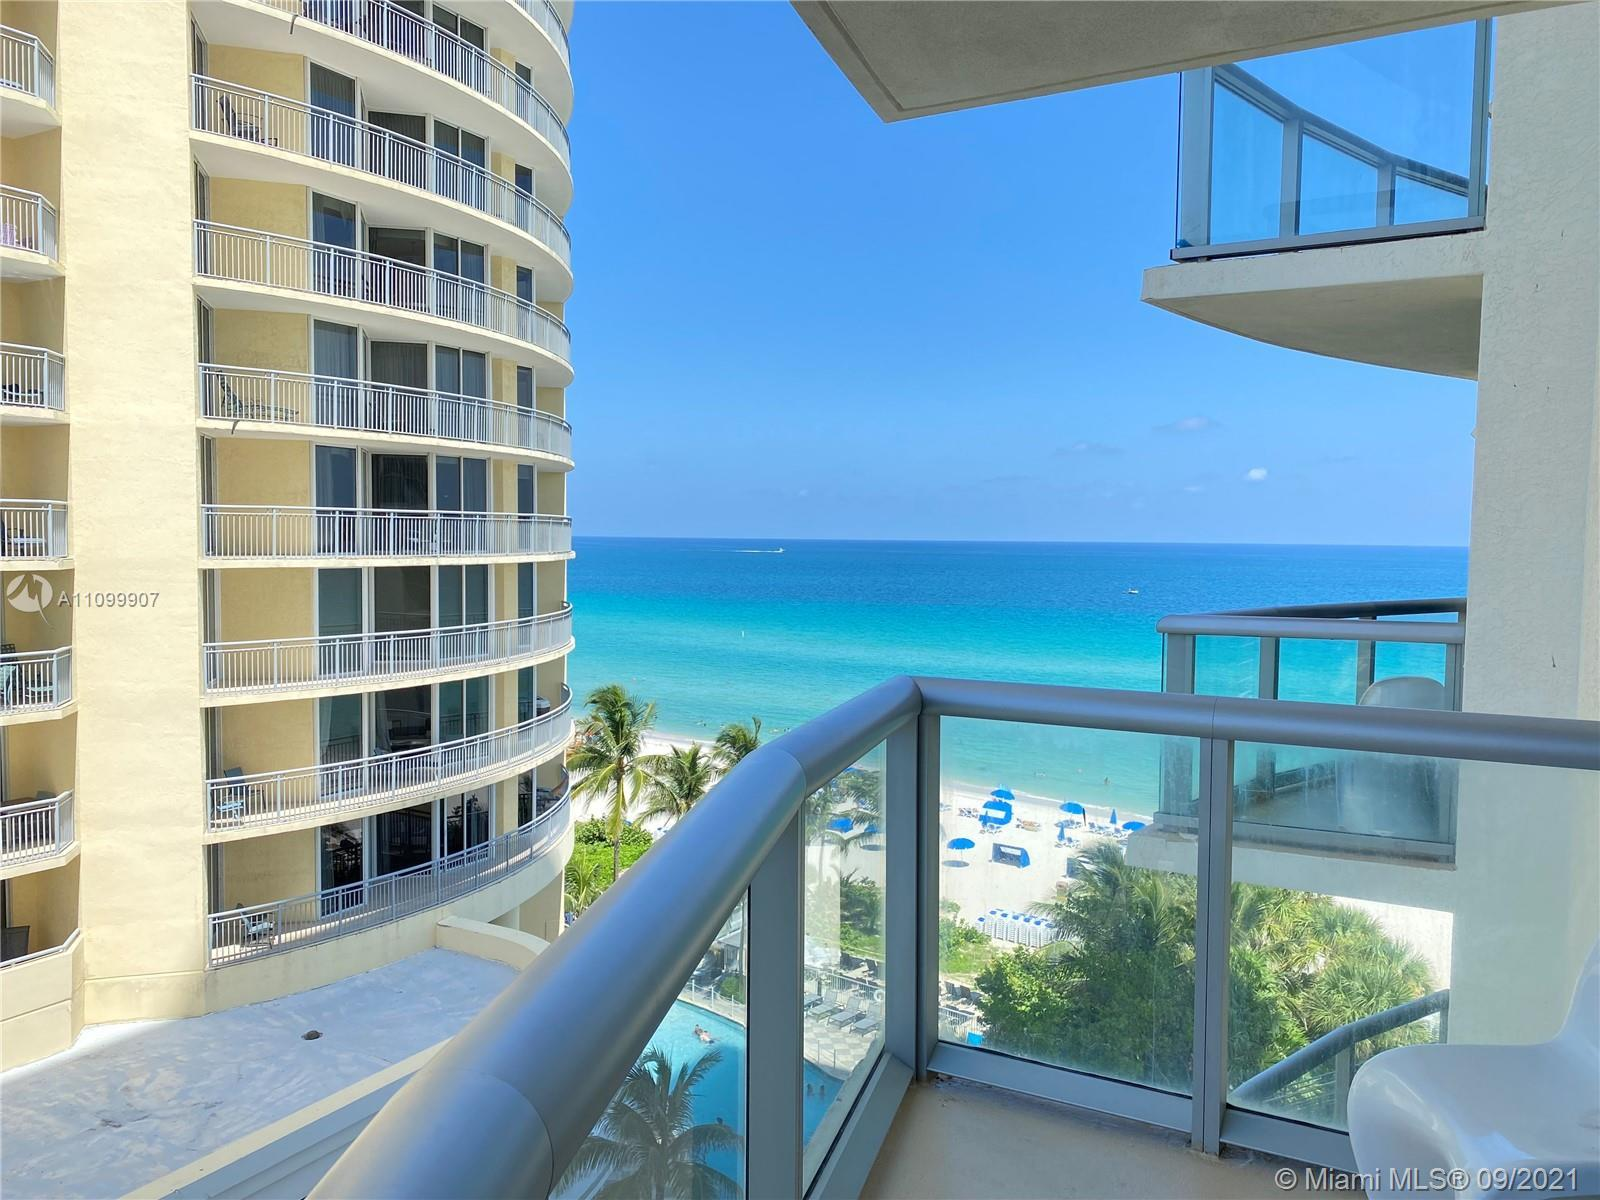 Exclusive oceanfront building features direct beach access. Beautiful 1 bedroom 1 bath condo with a